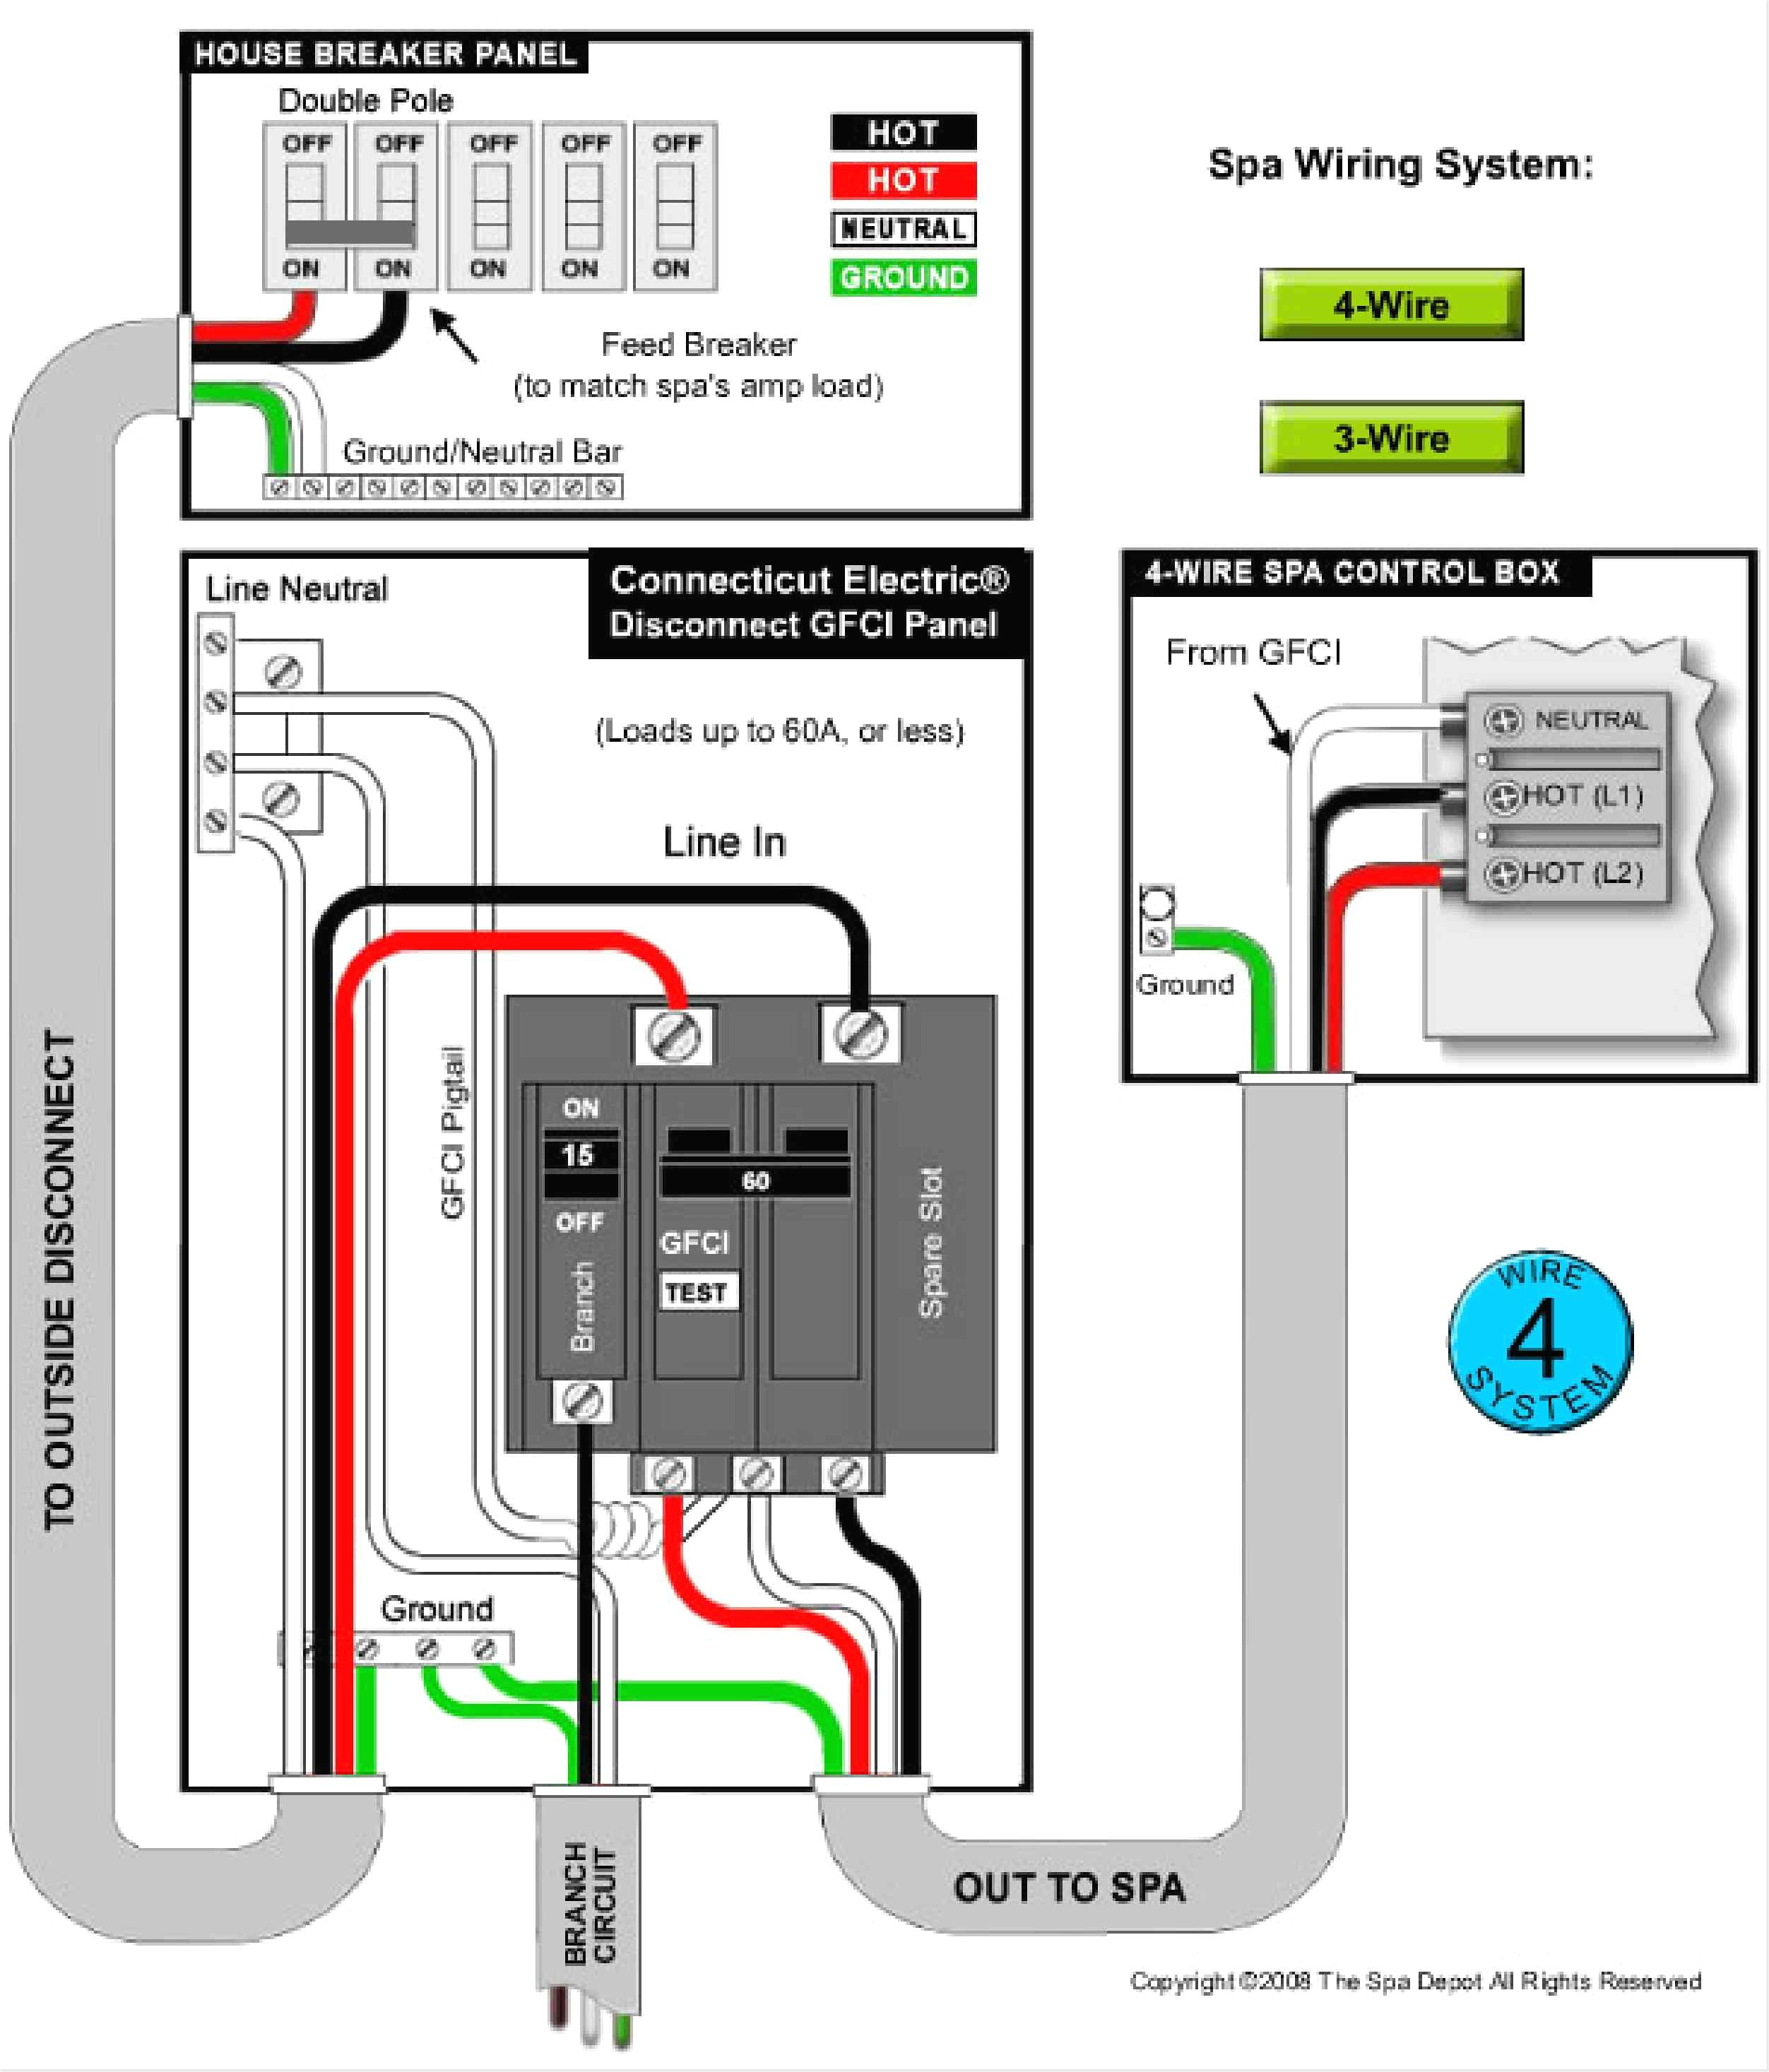 50 amp gfci breaker wiring diagram for - 85 blazer wire diagram for wiring  diagram schematics  wiring diagram and schematics